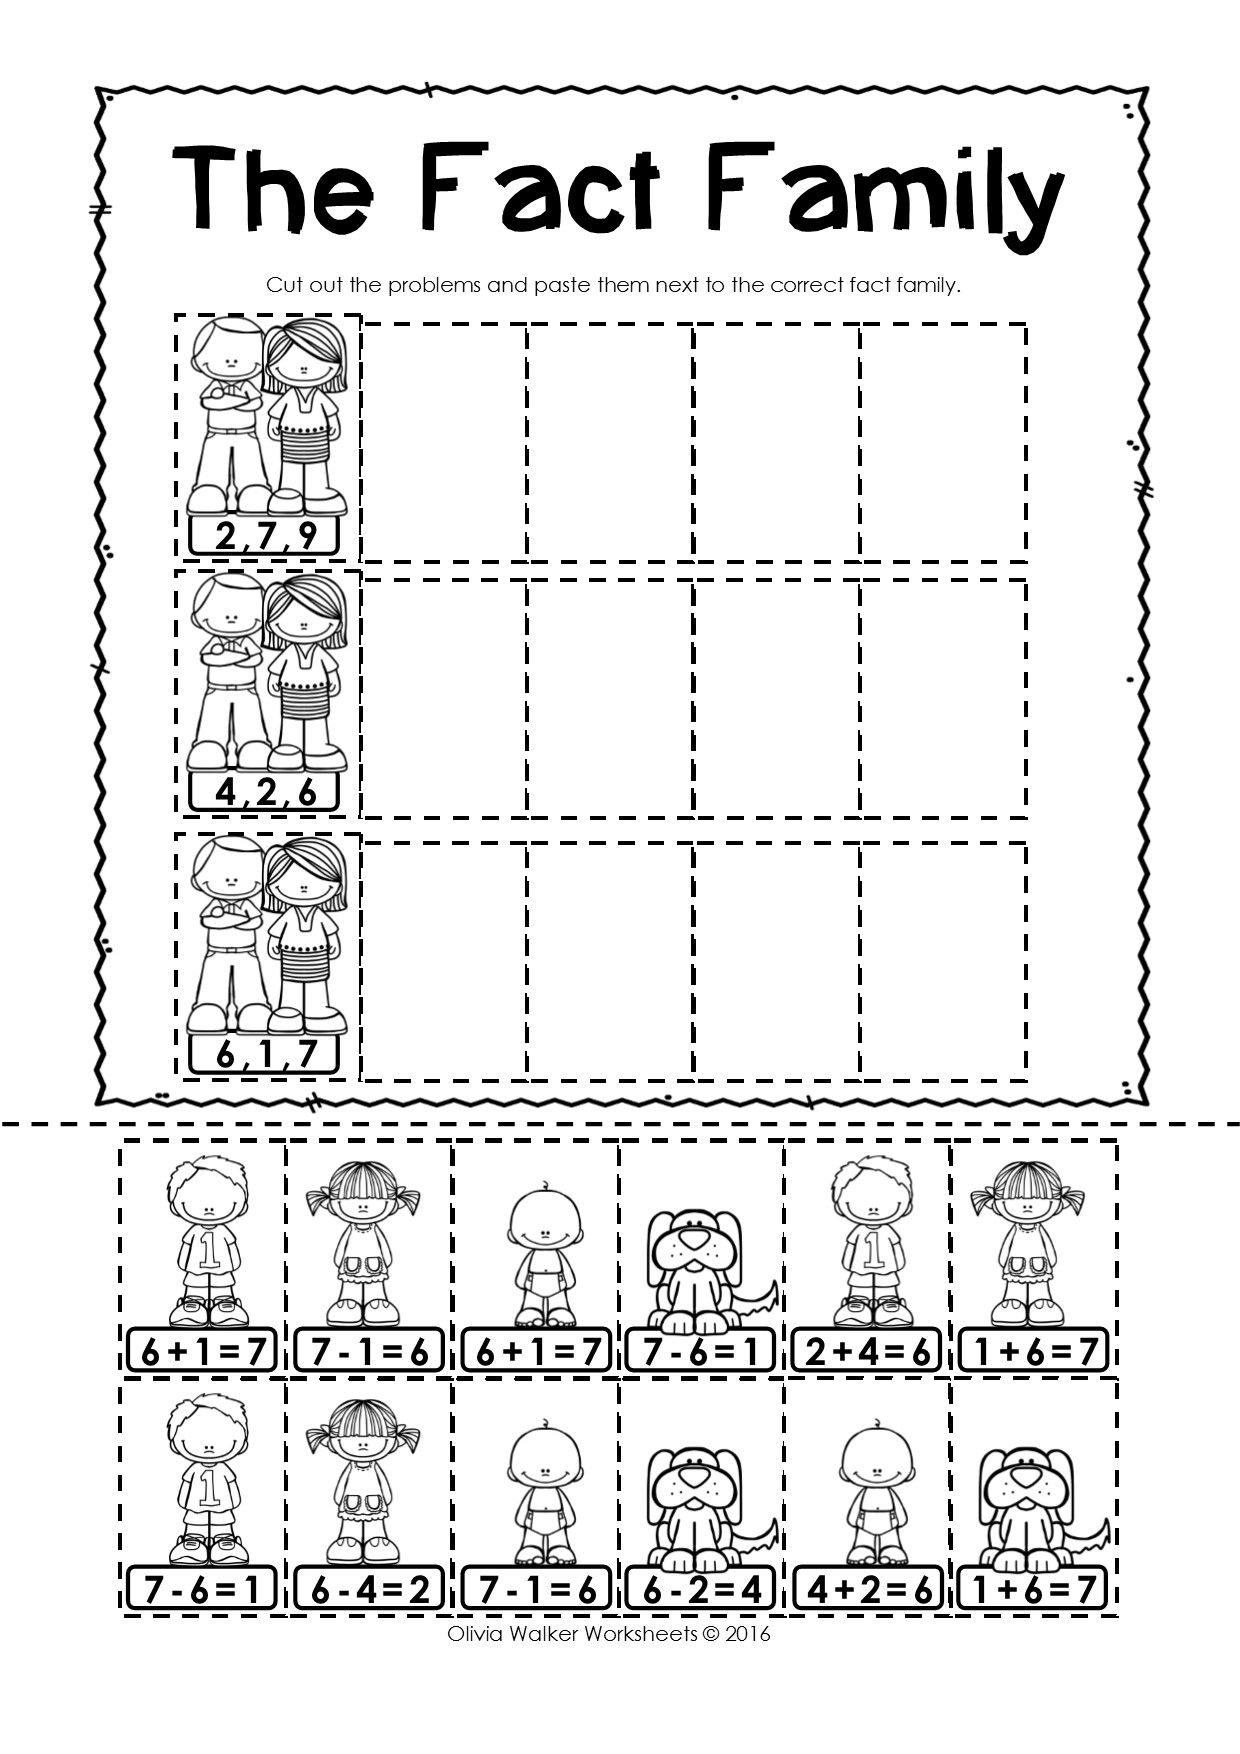 hight resolution of Pin on My Worksheets and Clip Art